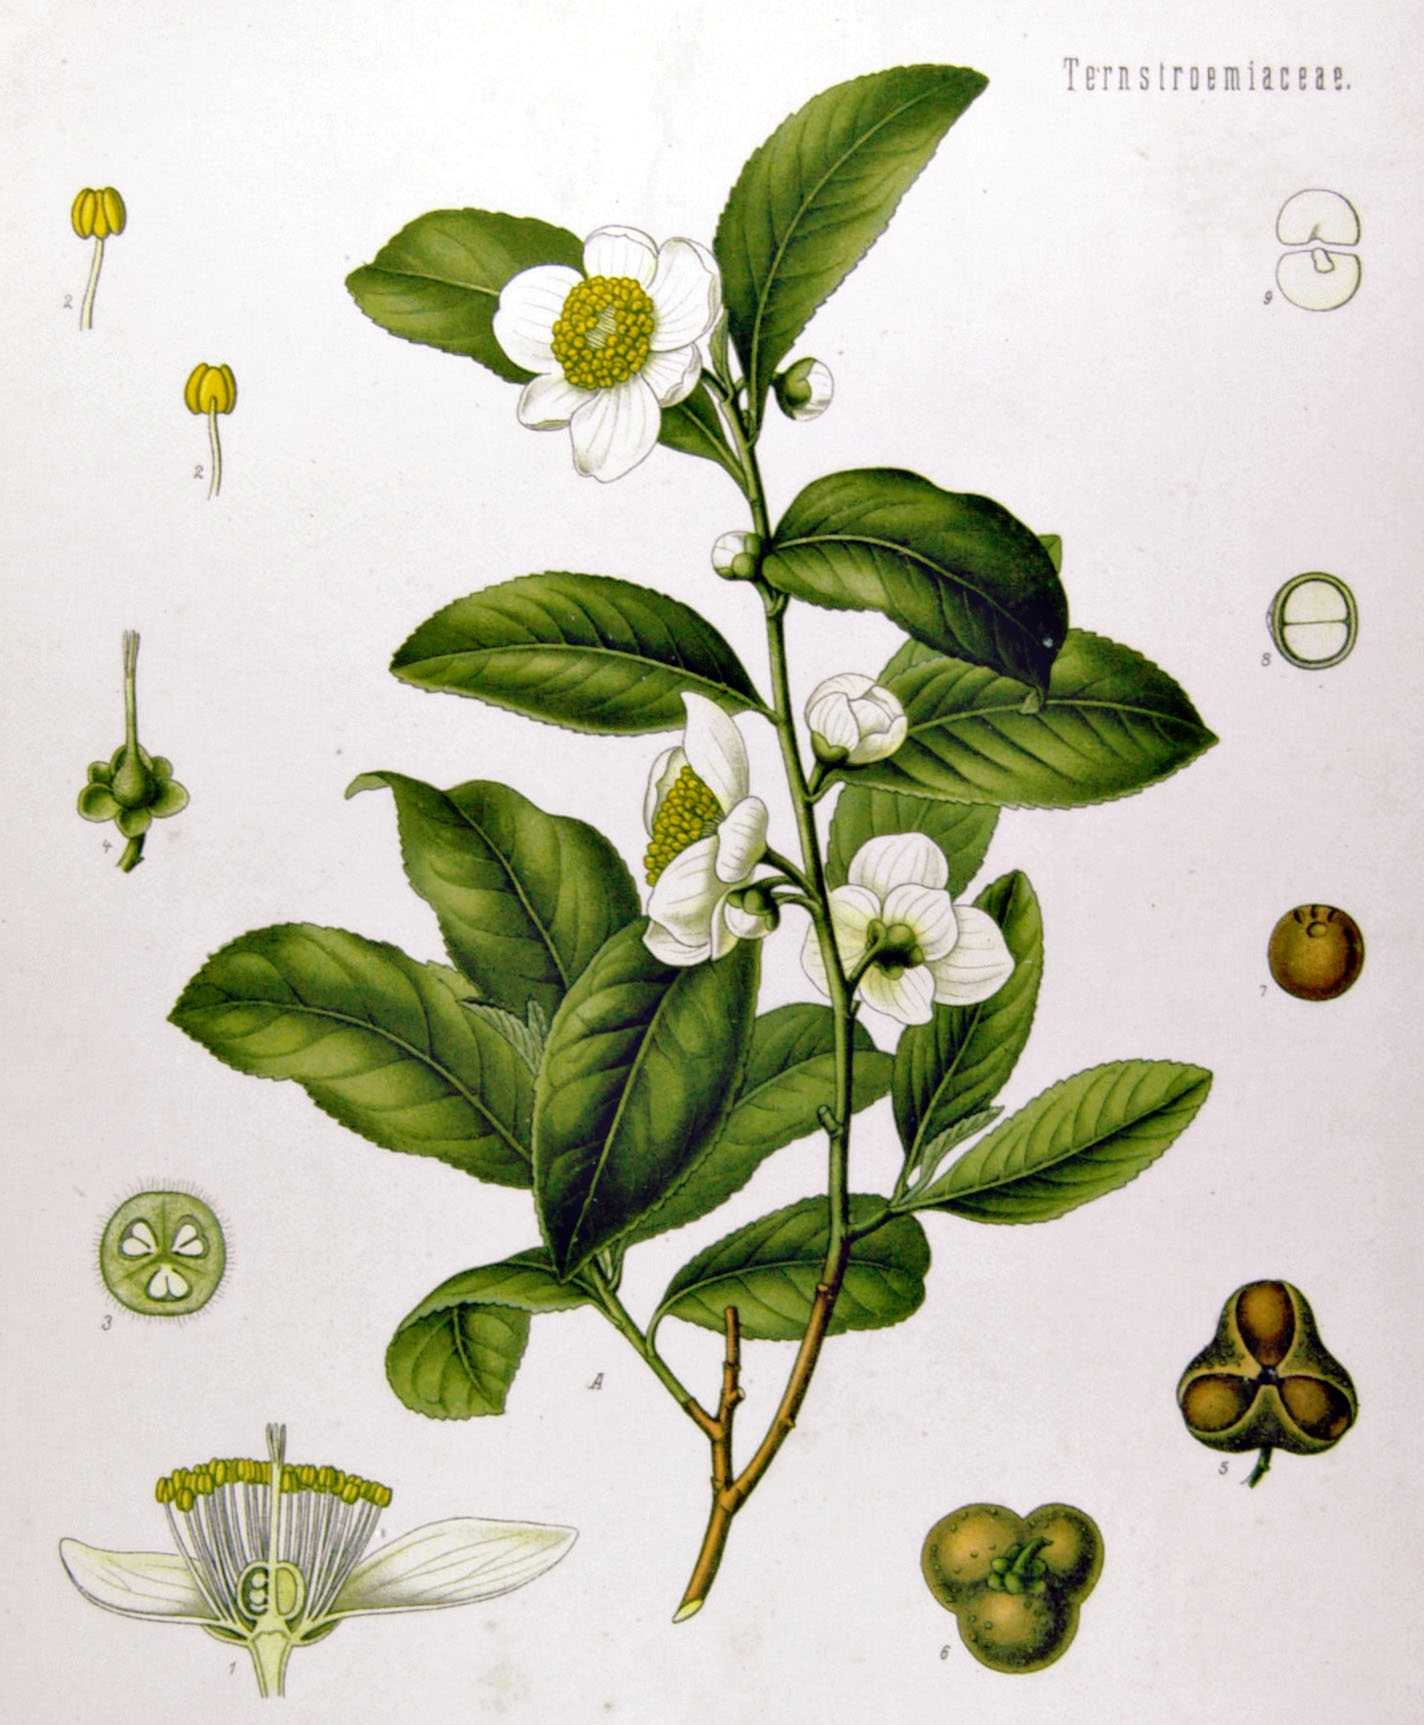 An illustration of tea plant (Camellia sinensis) with cross-section of the flower (lower left) and seeds (lower right).